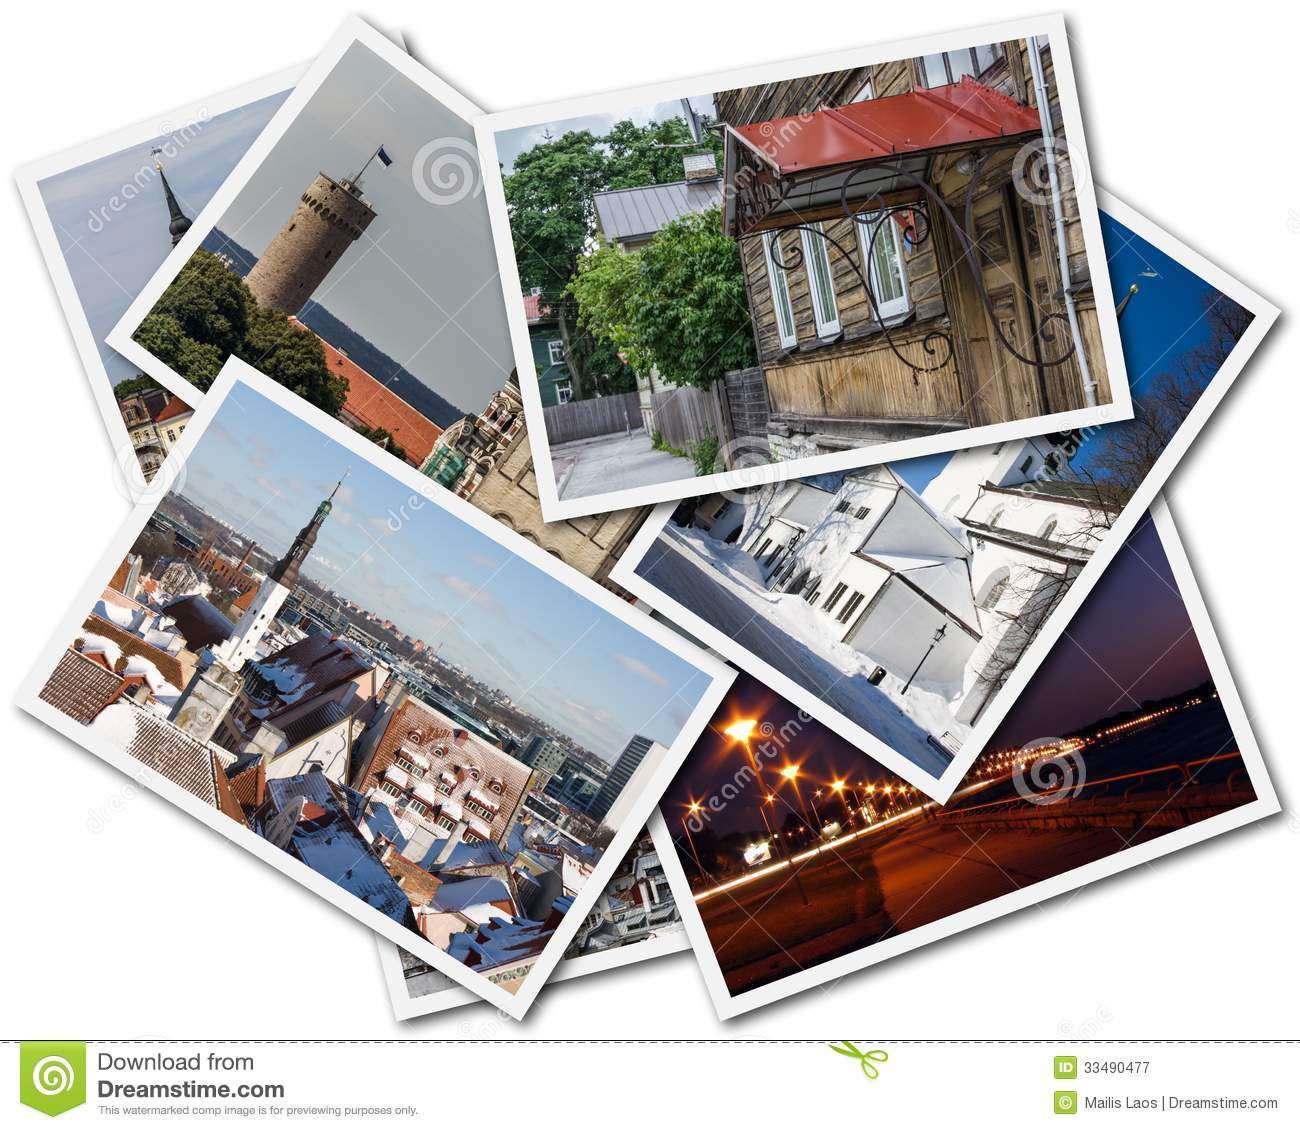 Download Tallinn Photos stock image. Image of postcard, city, pictures - 33490477